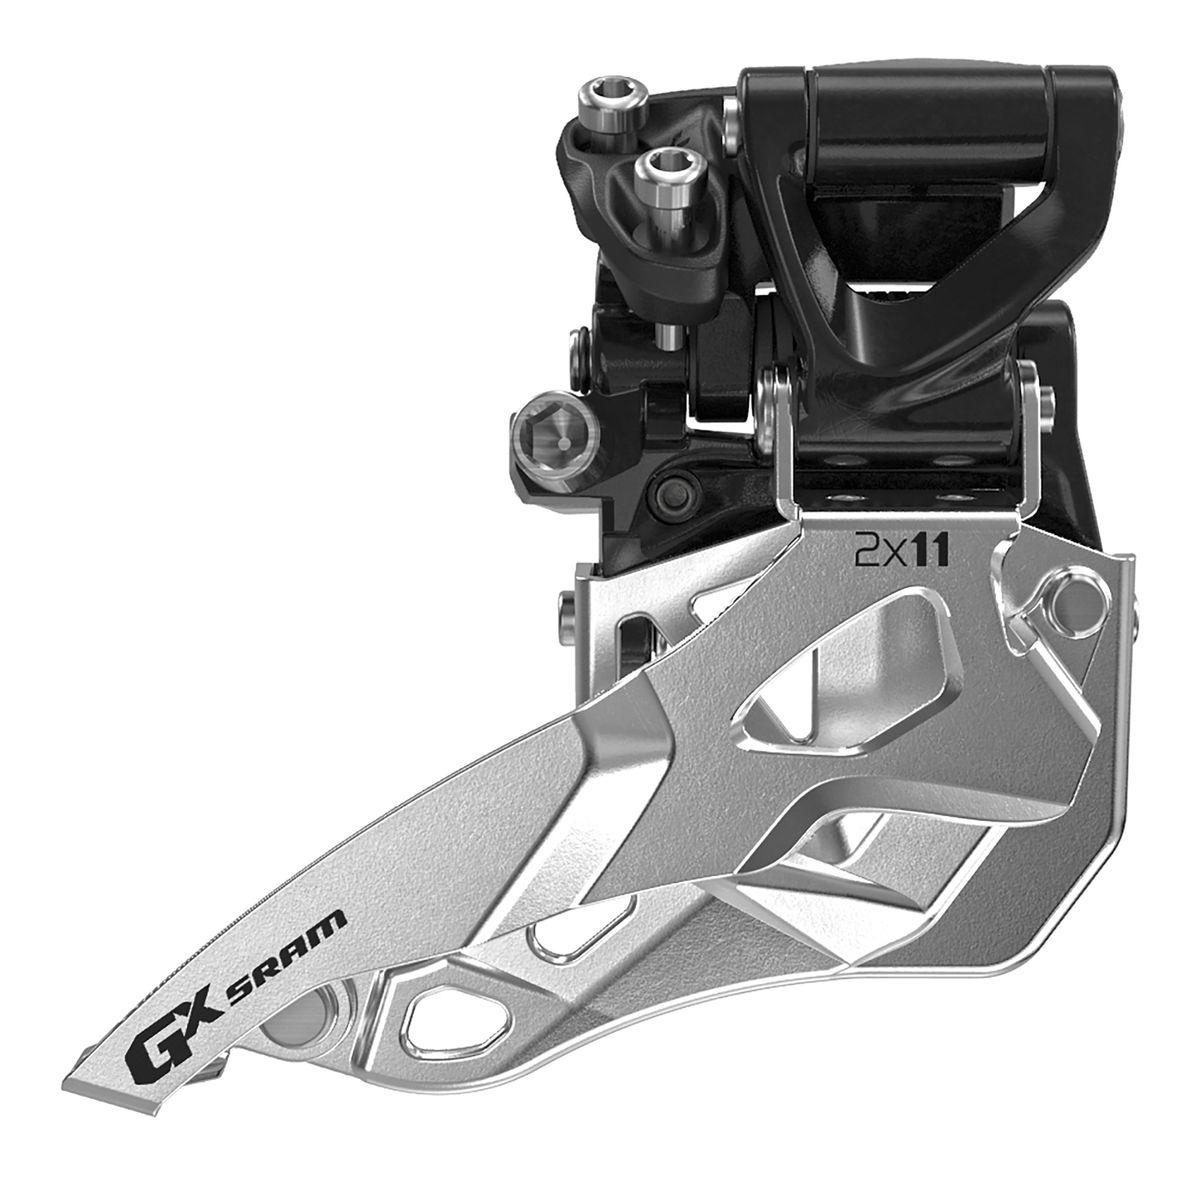 SRAM GX 2 x 11 High clamp MTB front derailleur | Misc. Gears and Transmission